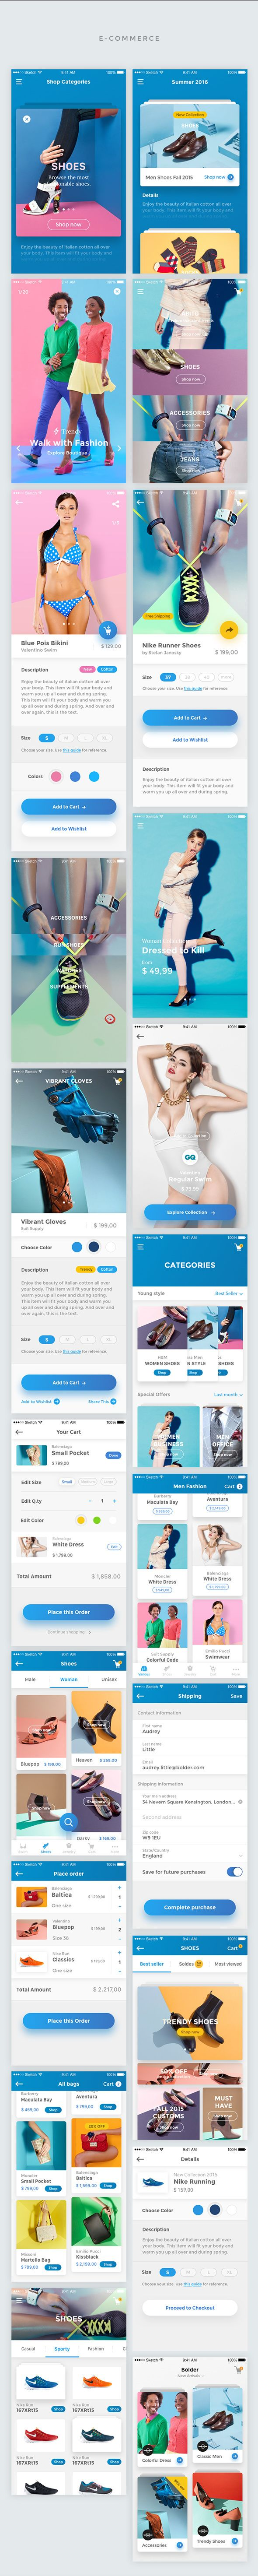 Bolder – Multipurpose Mobile UI KIT for Sketch in UI/UX